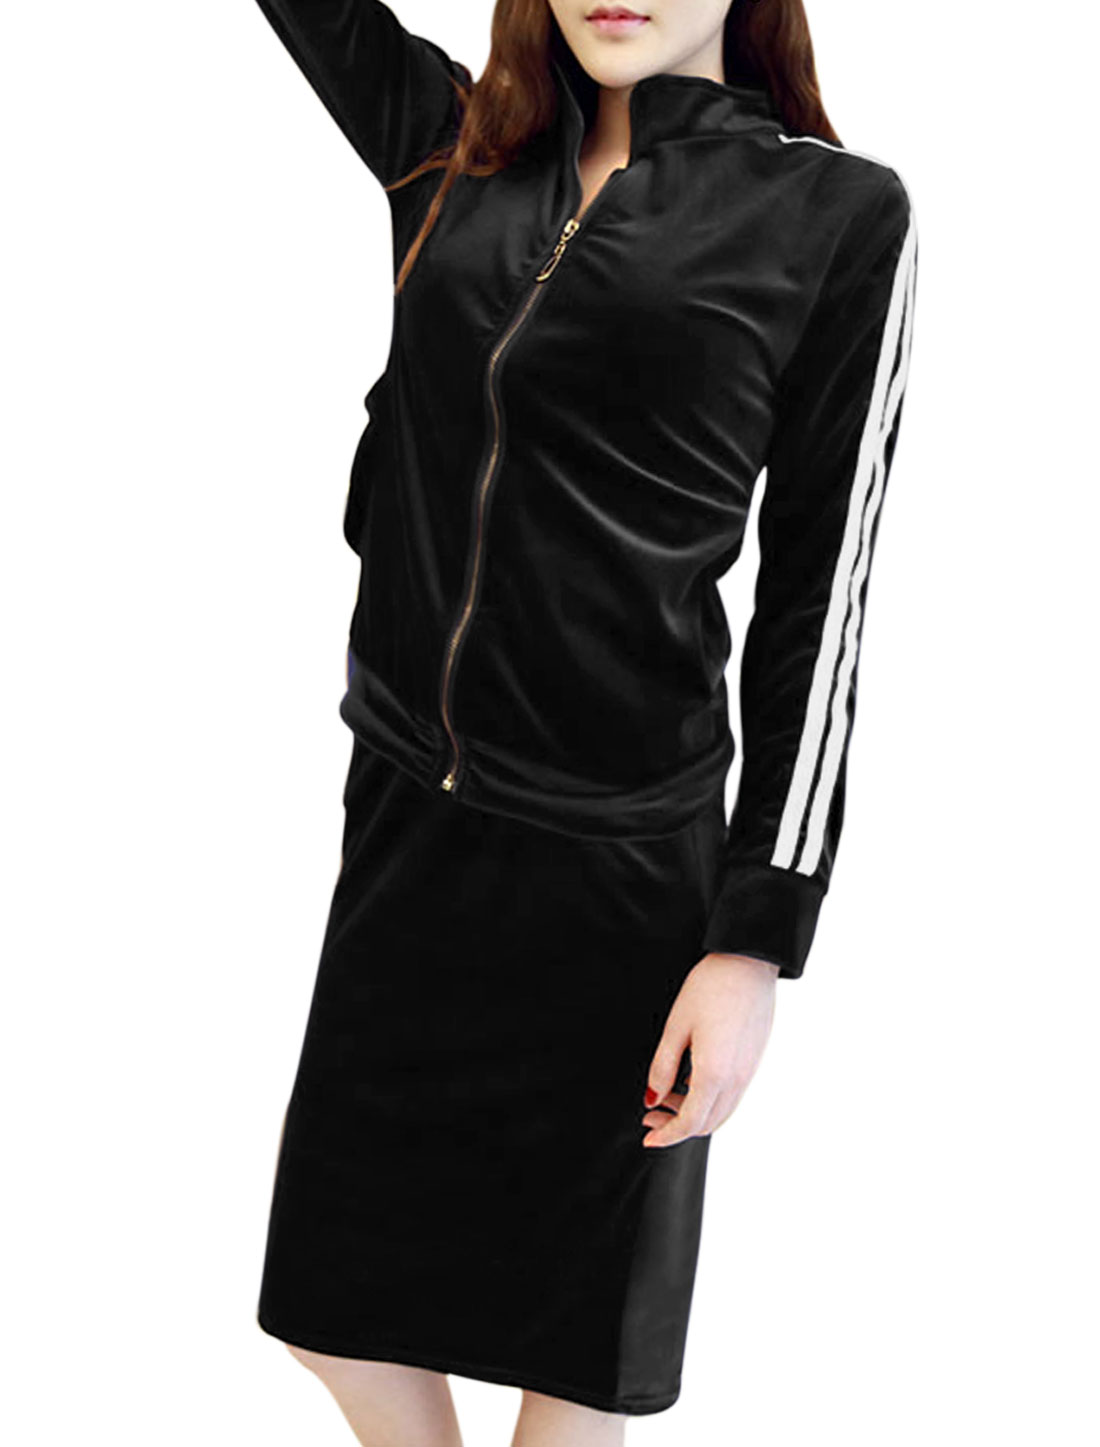 Lady Zip Up Casual Velvet Jacket w Elastic Waist Velvet Skirt Black S